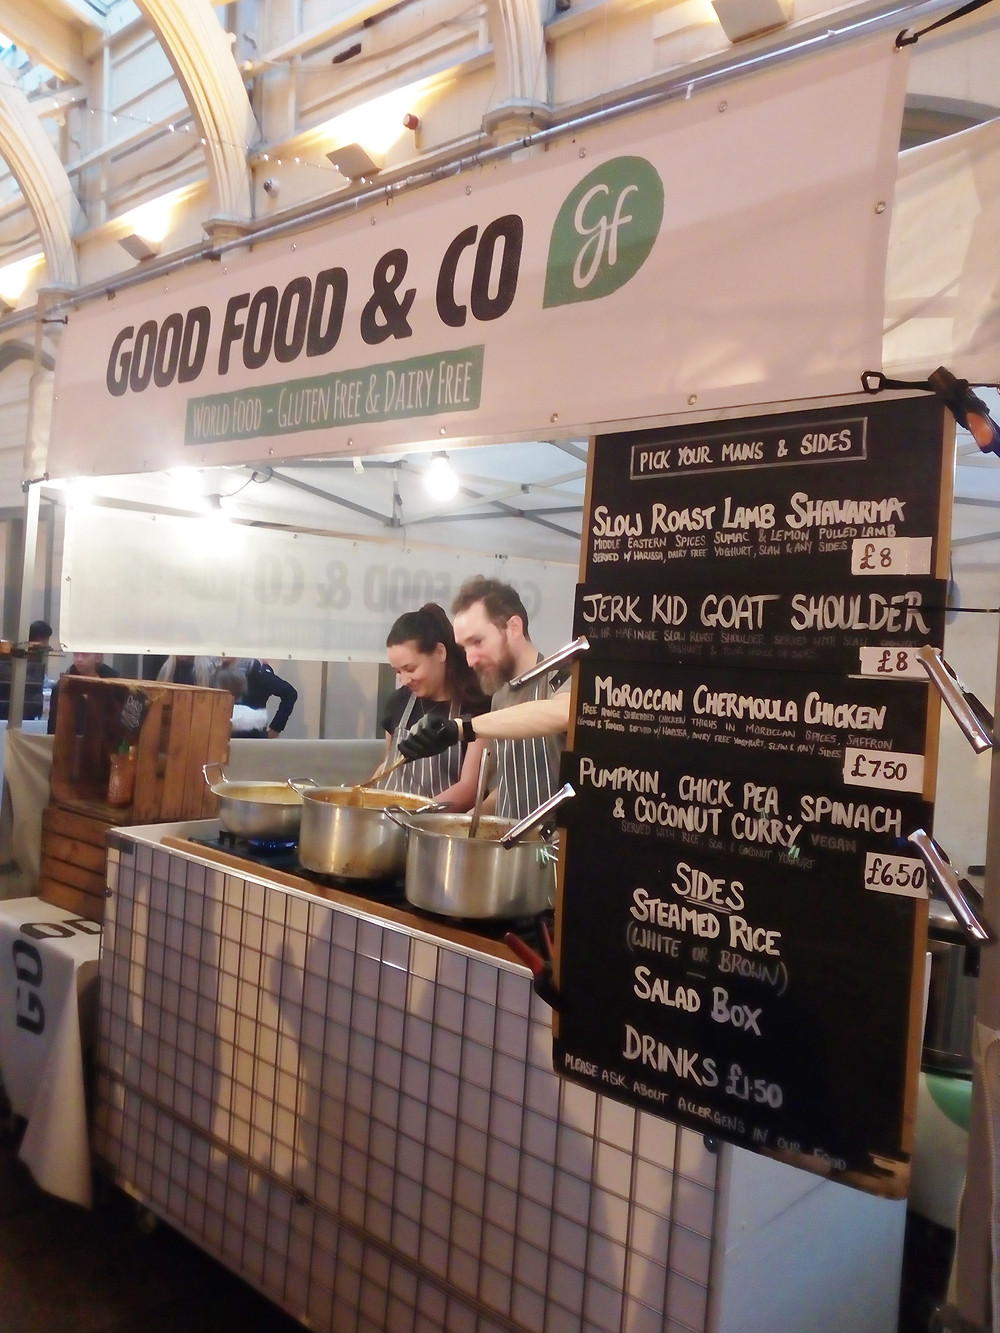 Good Food & Co's gluten-free world food stand